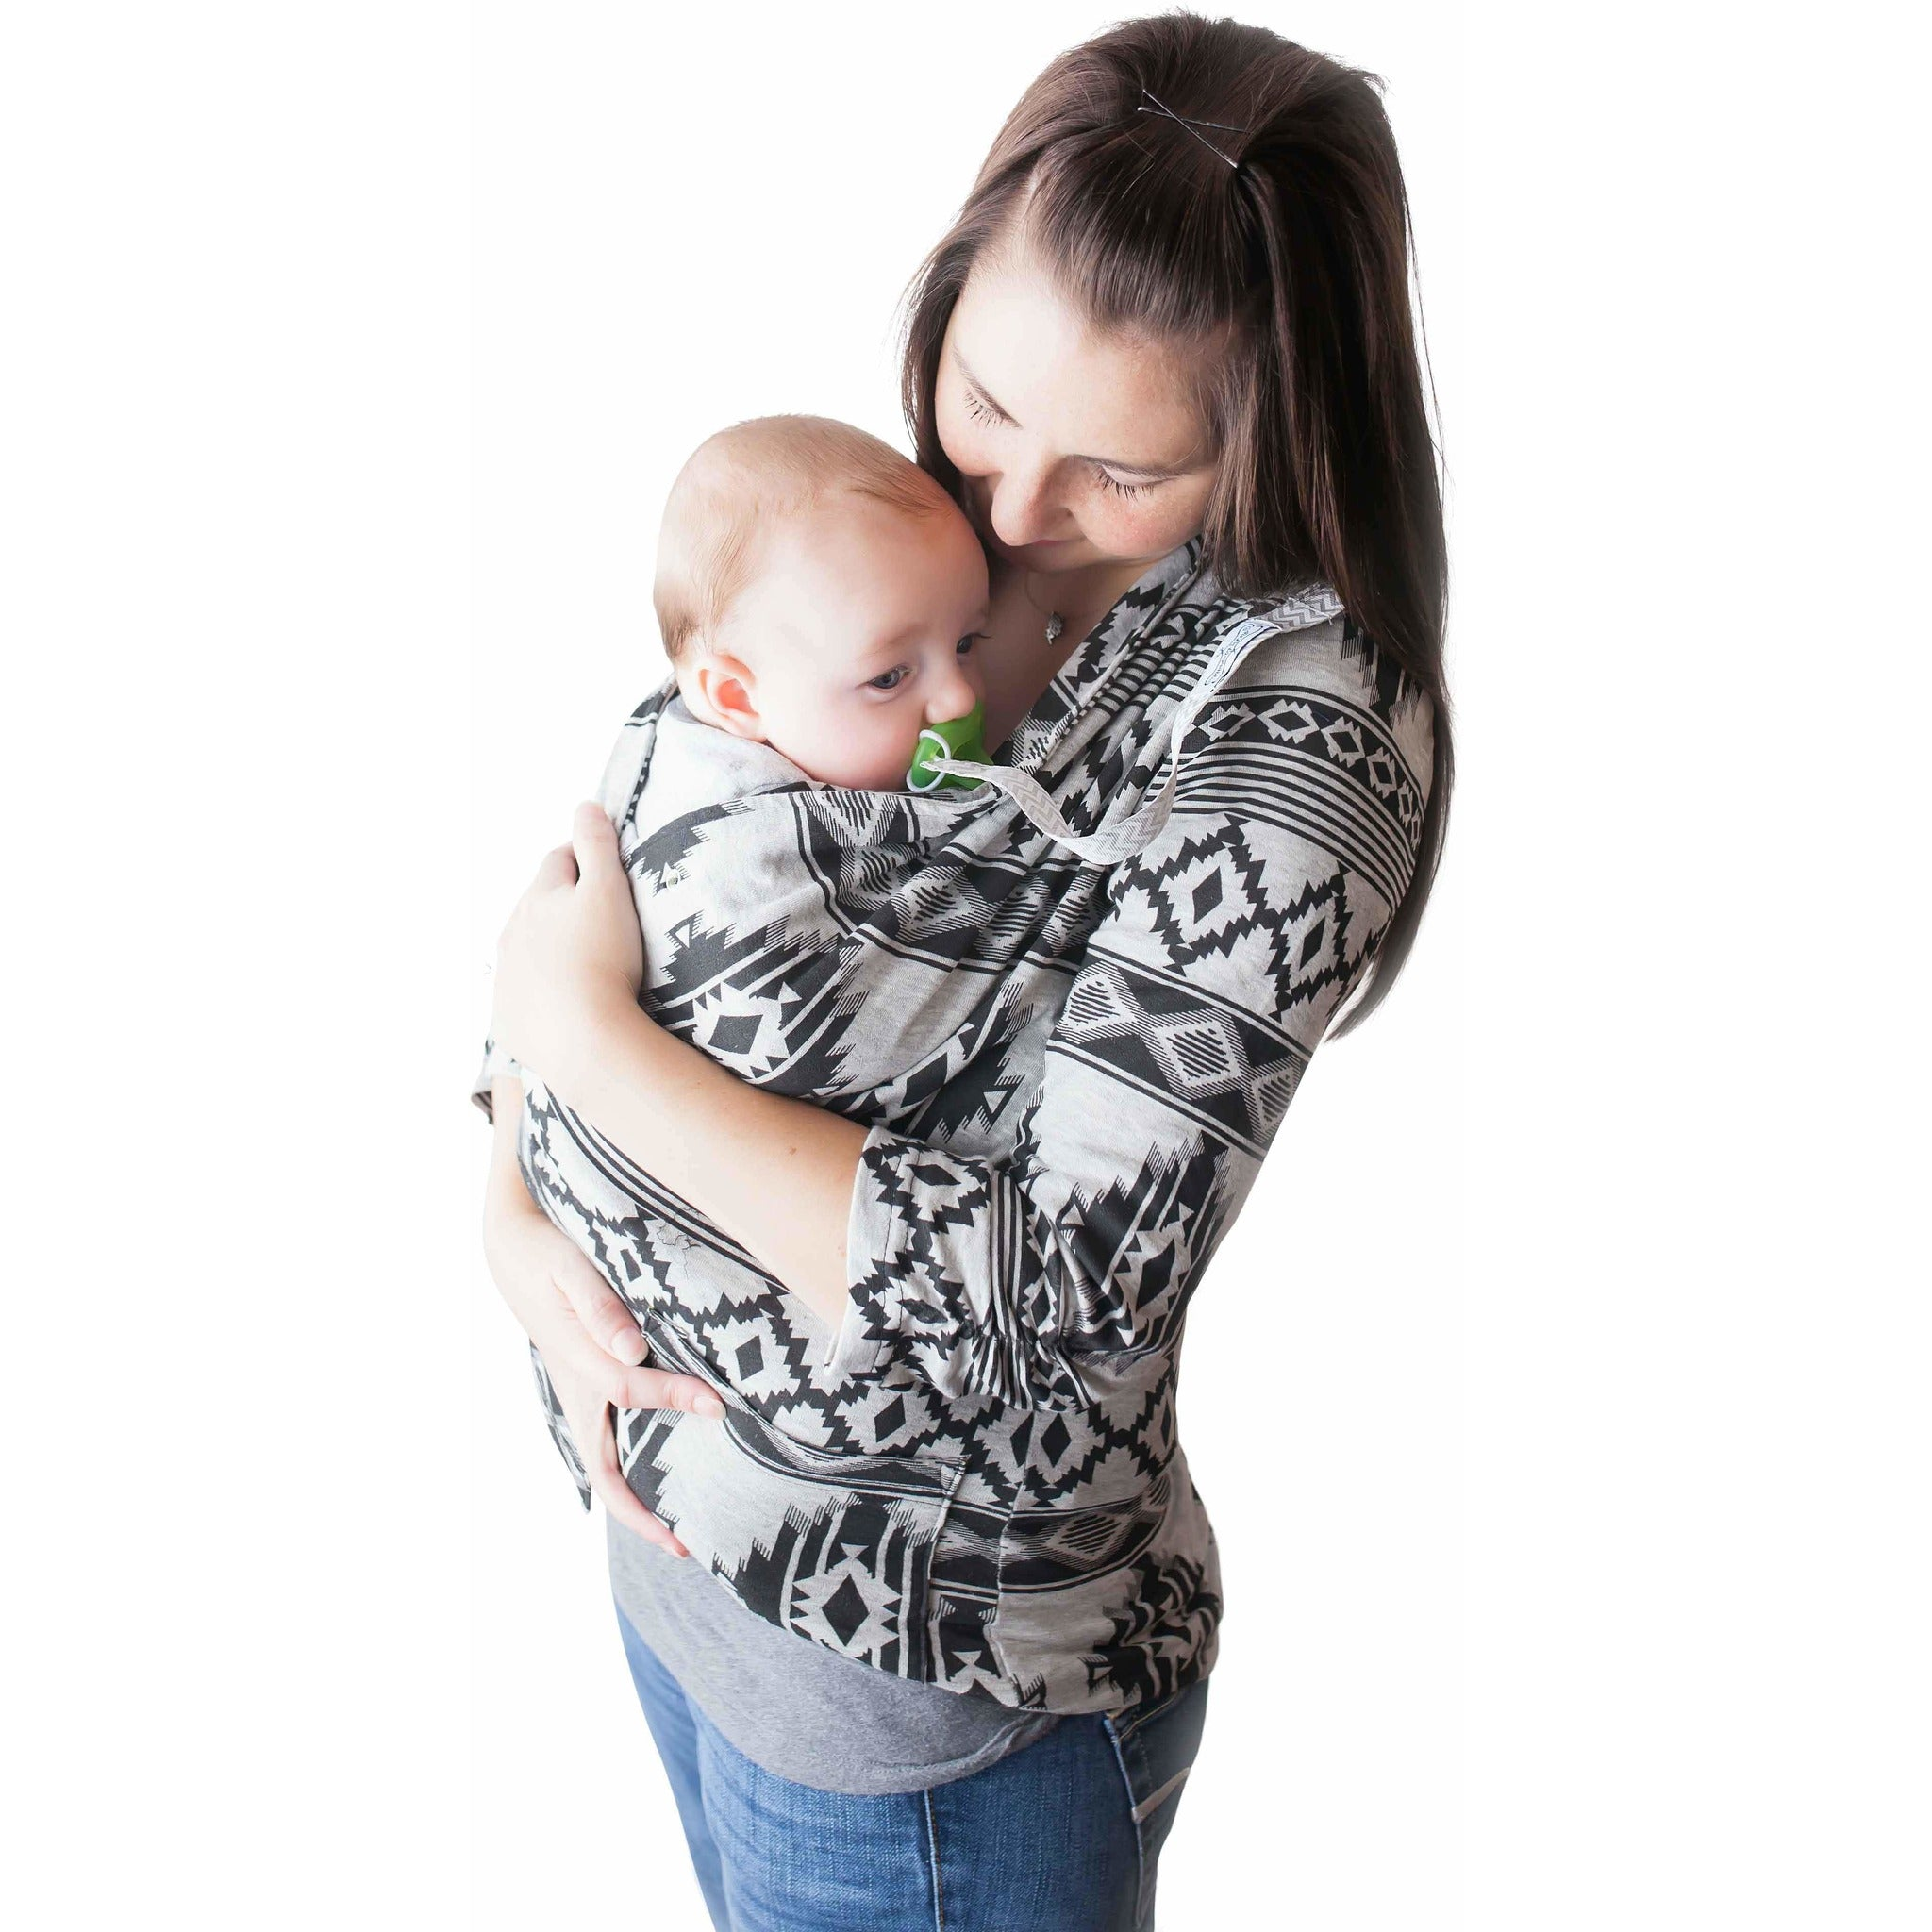 The Mommy Wrap® Helps hold and soothe baby • Supports Colic - The